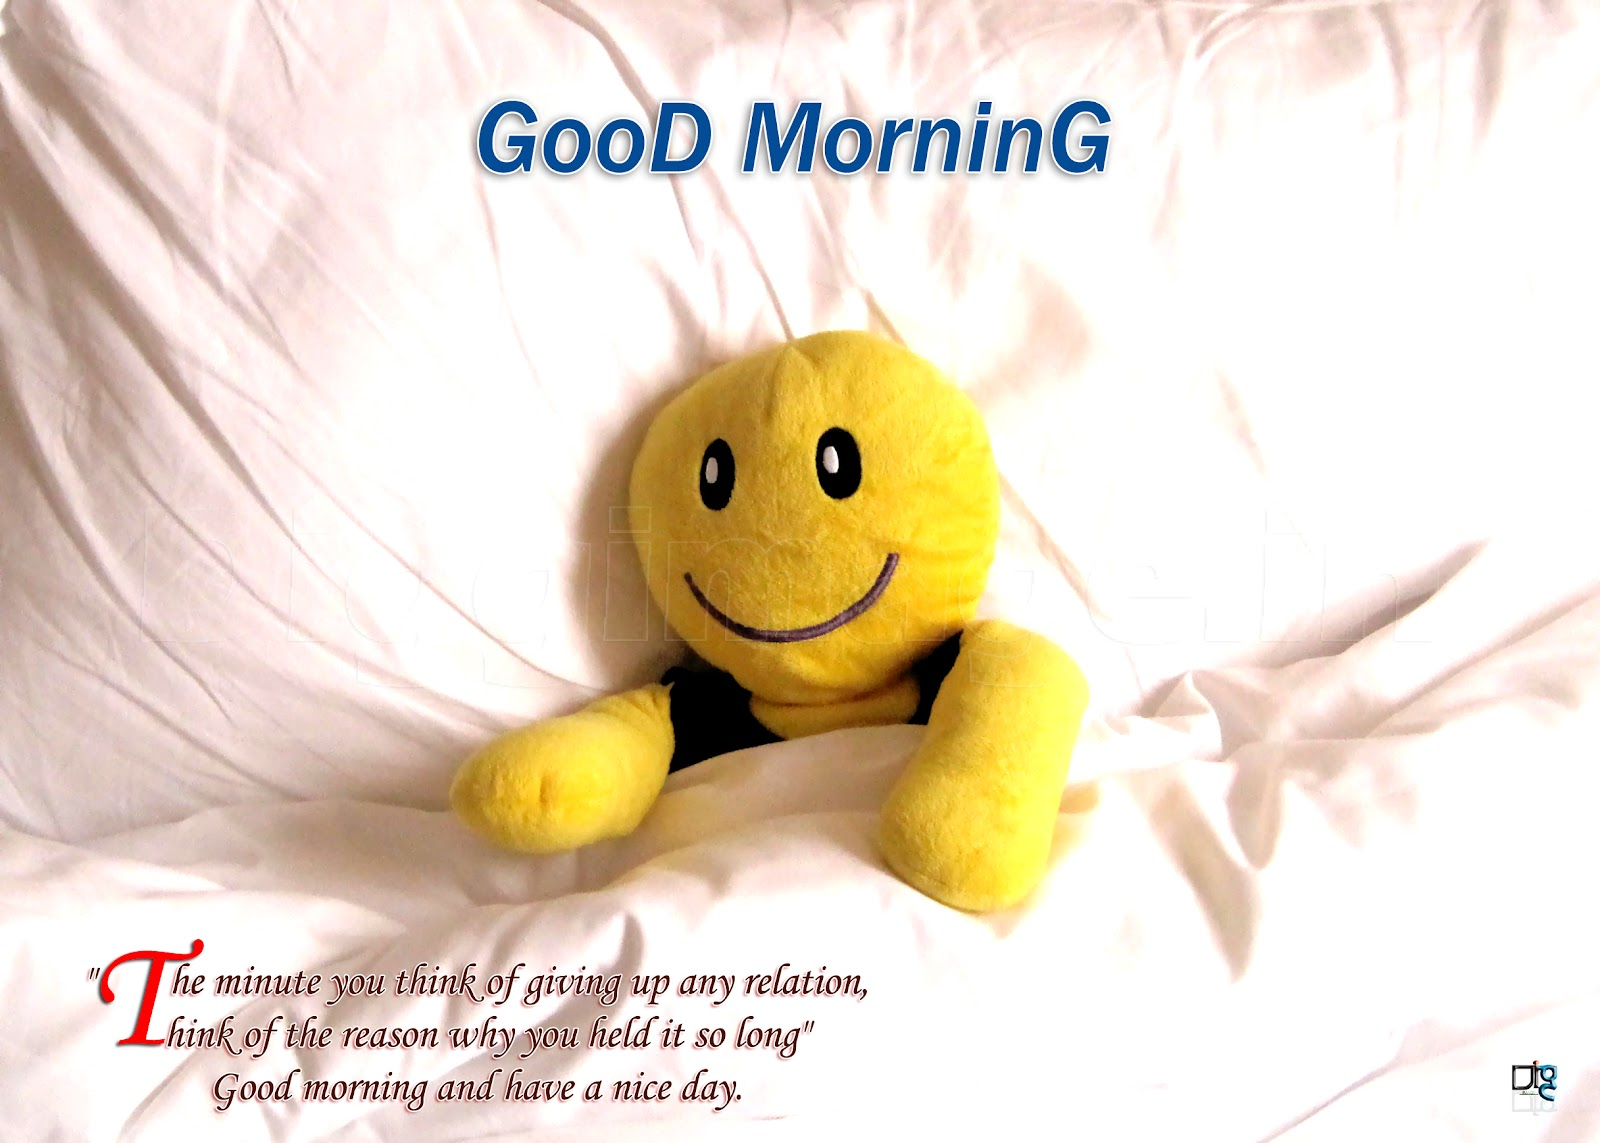 Good Morning Funny Quotes: A Morning Text Doesn't Only Mean 'Good Morning.' It Also